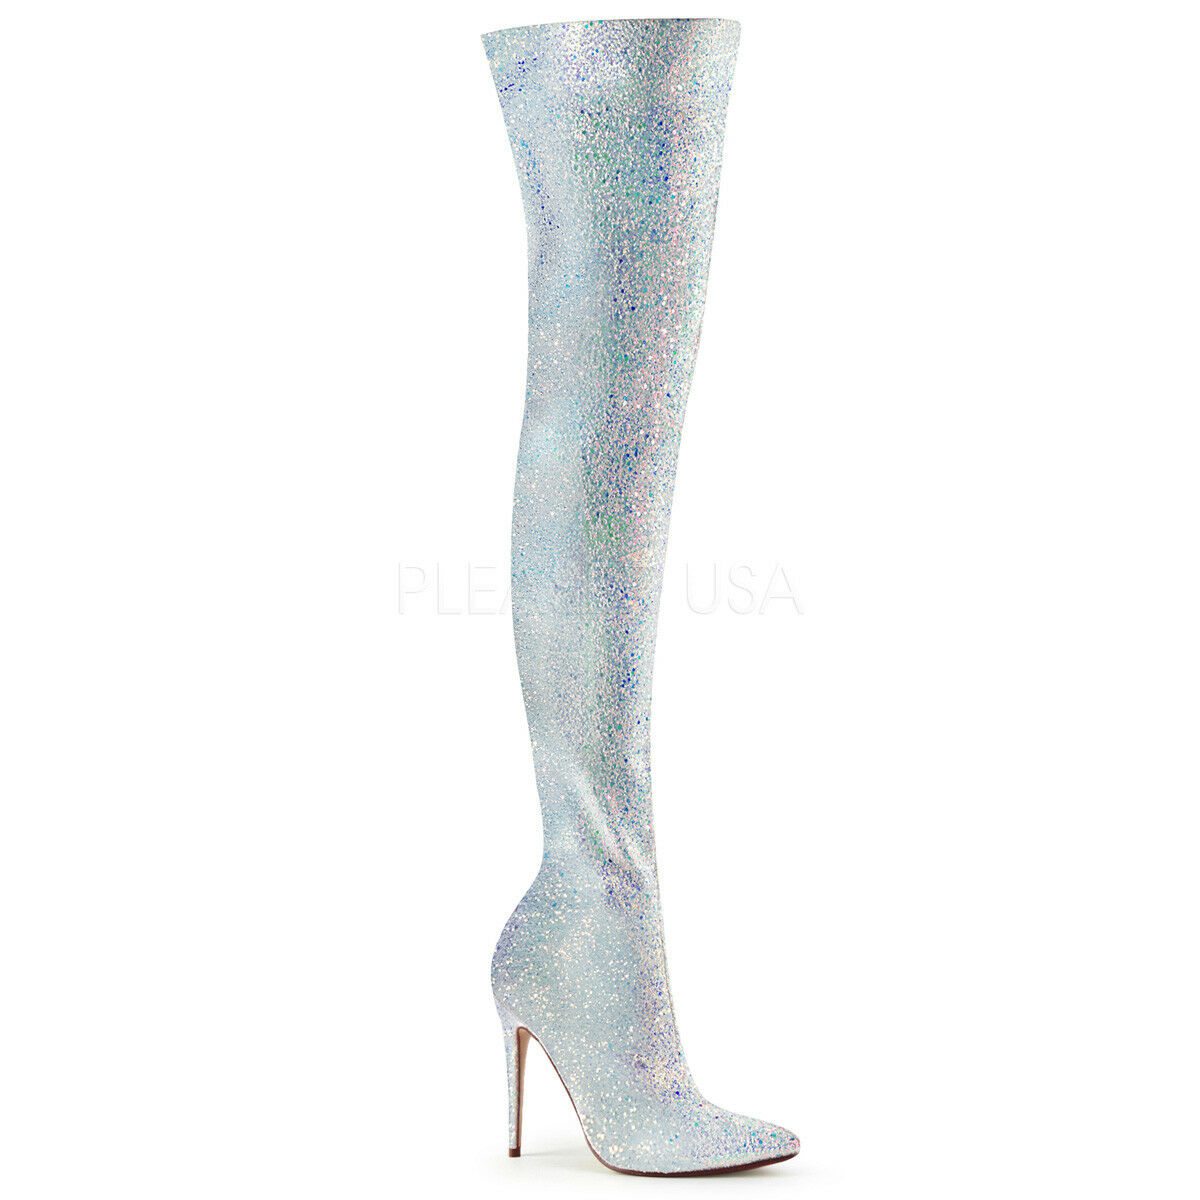 PLEASER COURTLY-3015 WHITE MULTI GLITTER STILETTO HEEL THIGH HIGH BOOTS